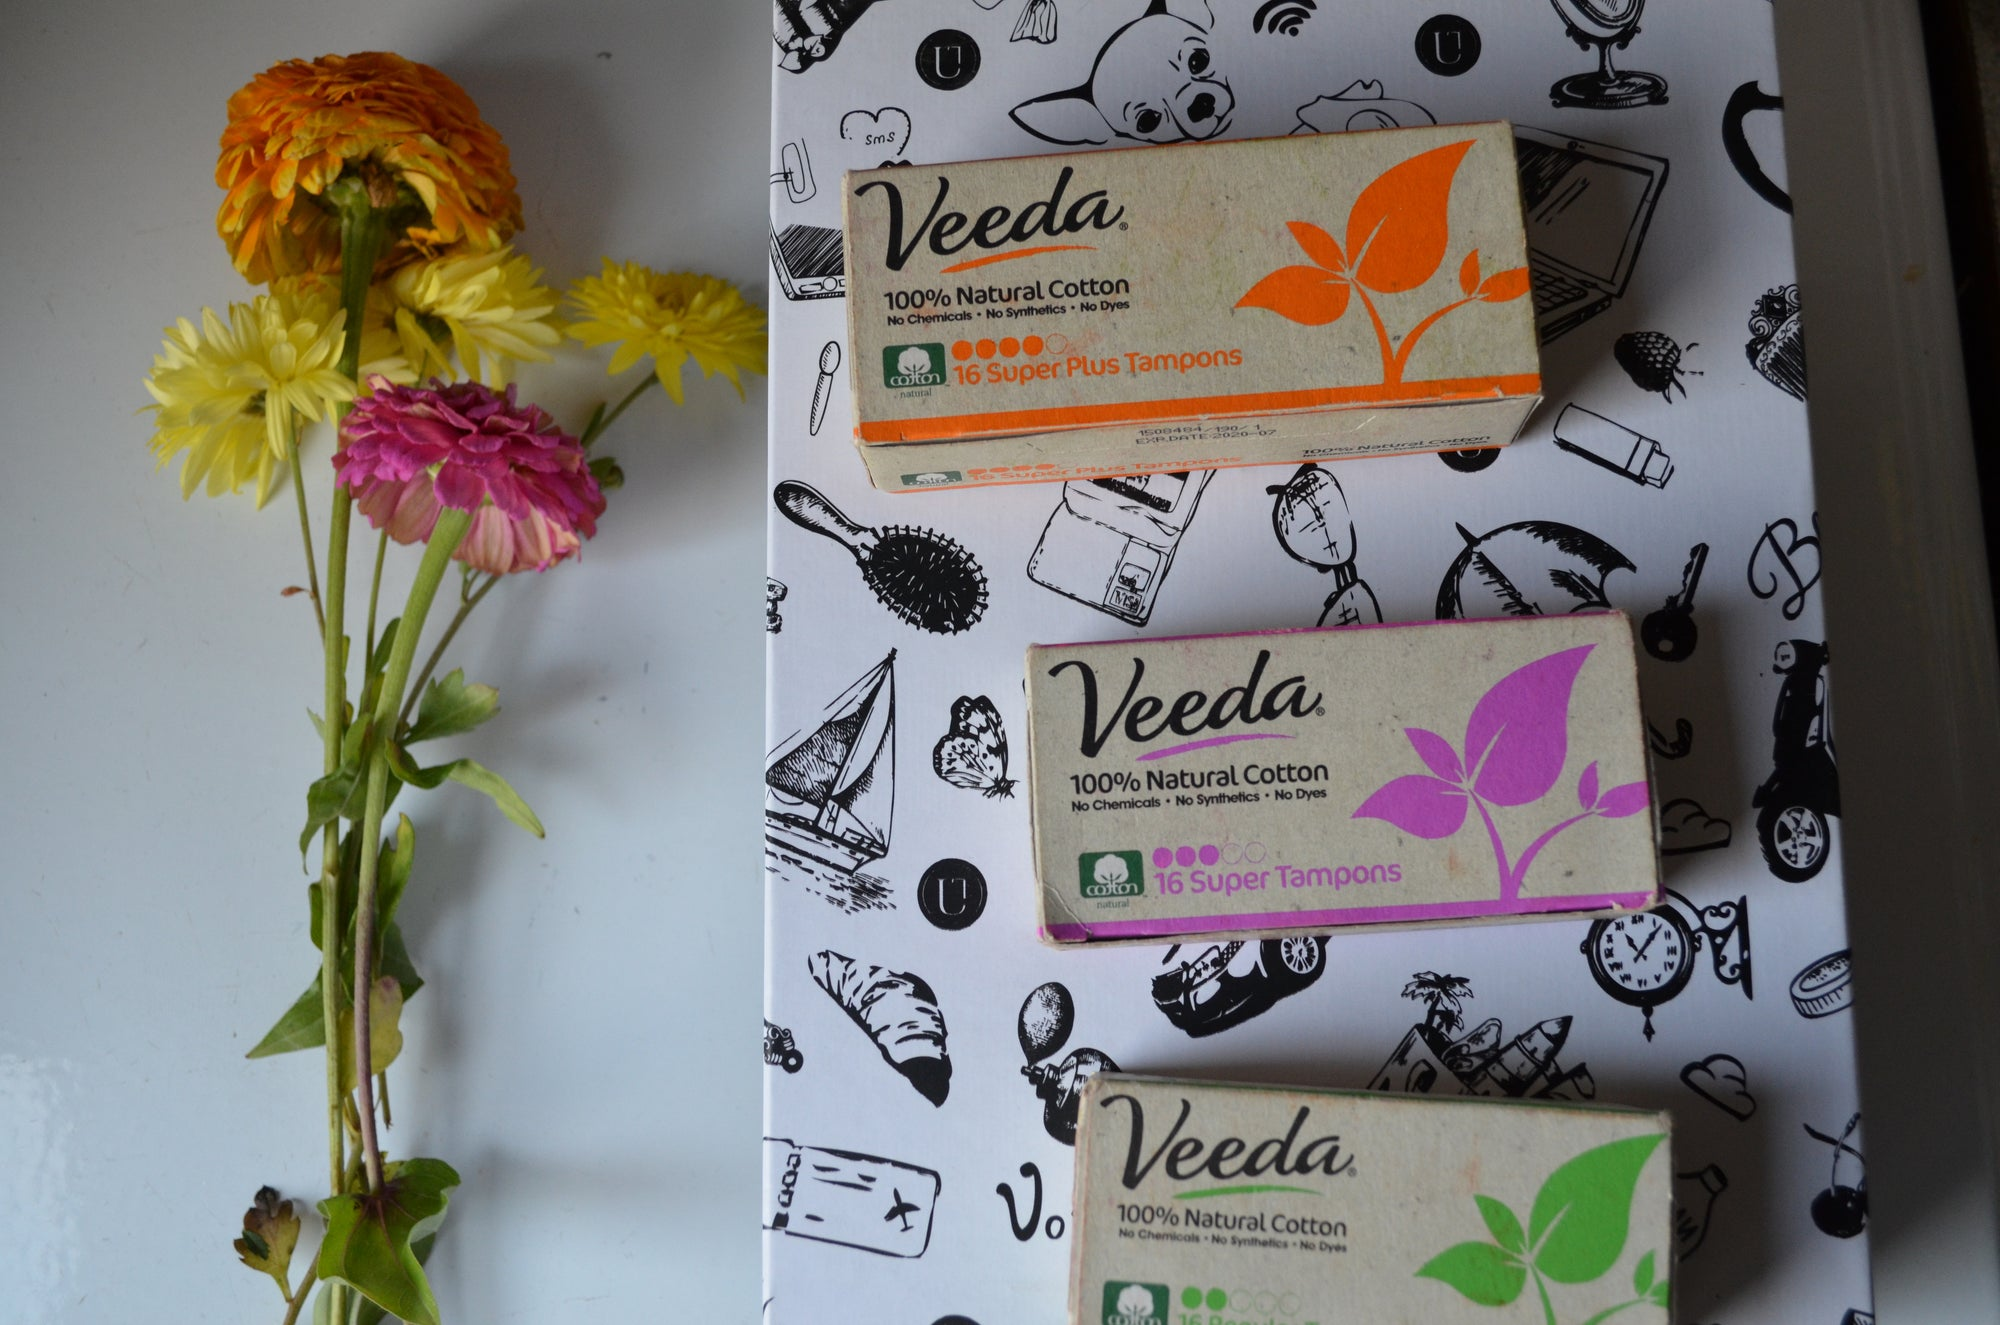 Veeda 100% natural cotton tampon & Pads Review!